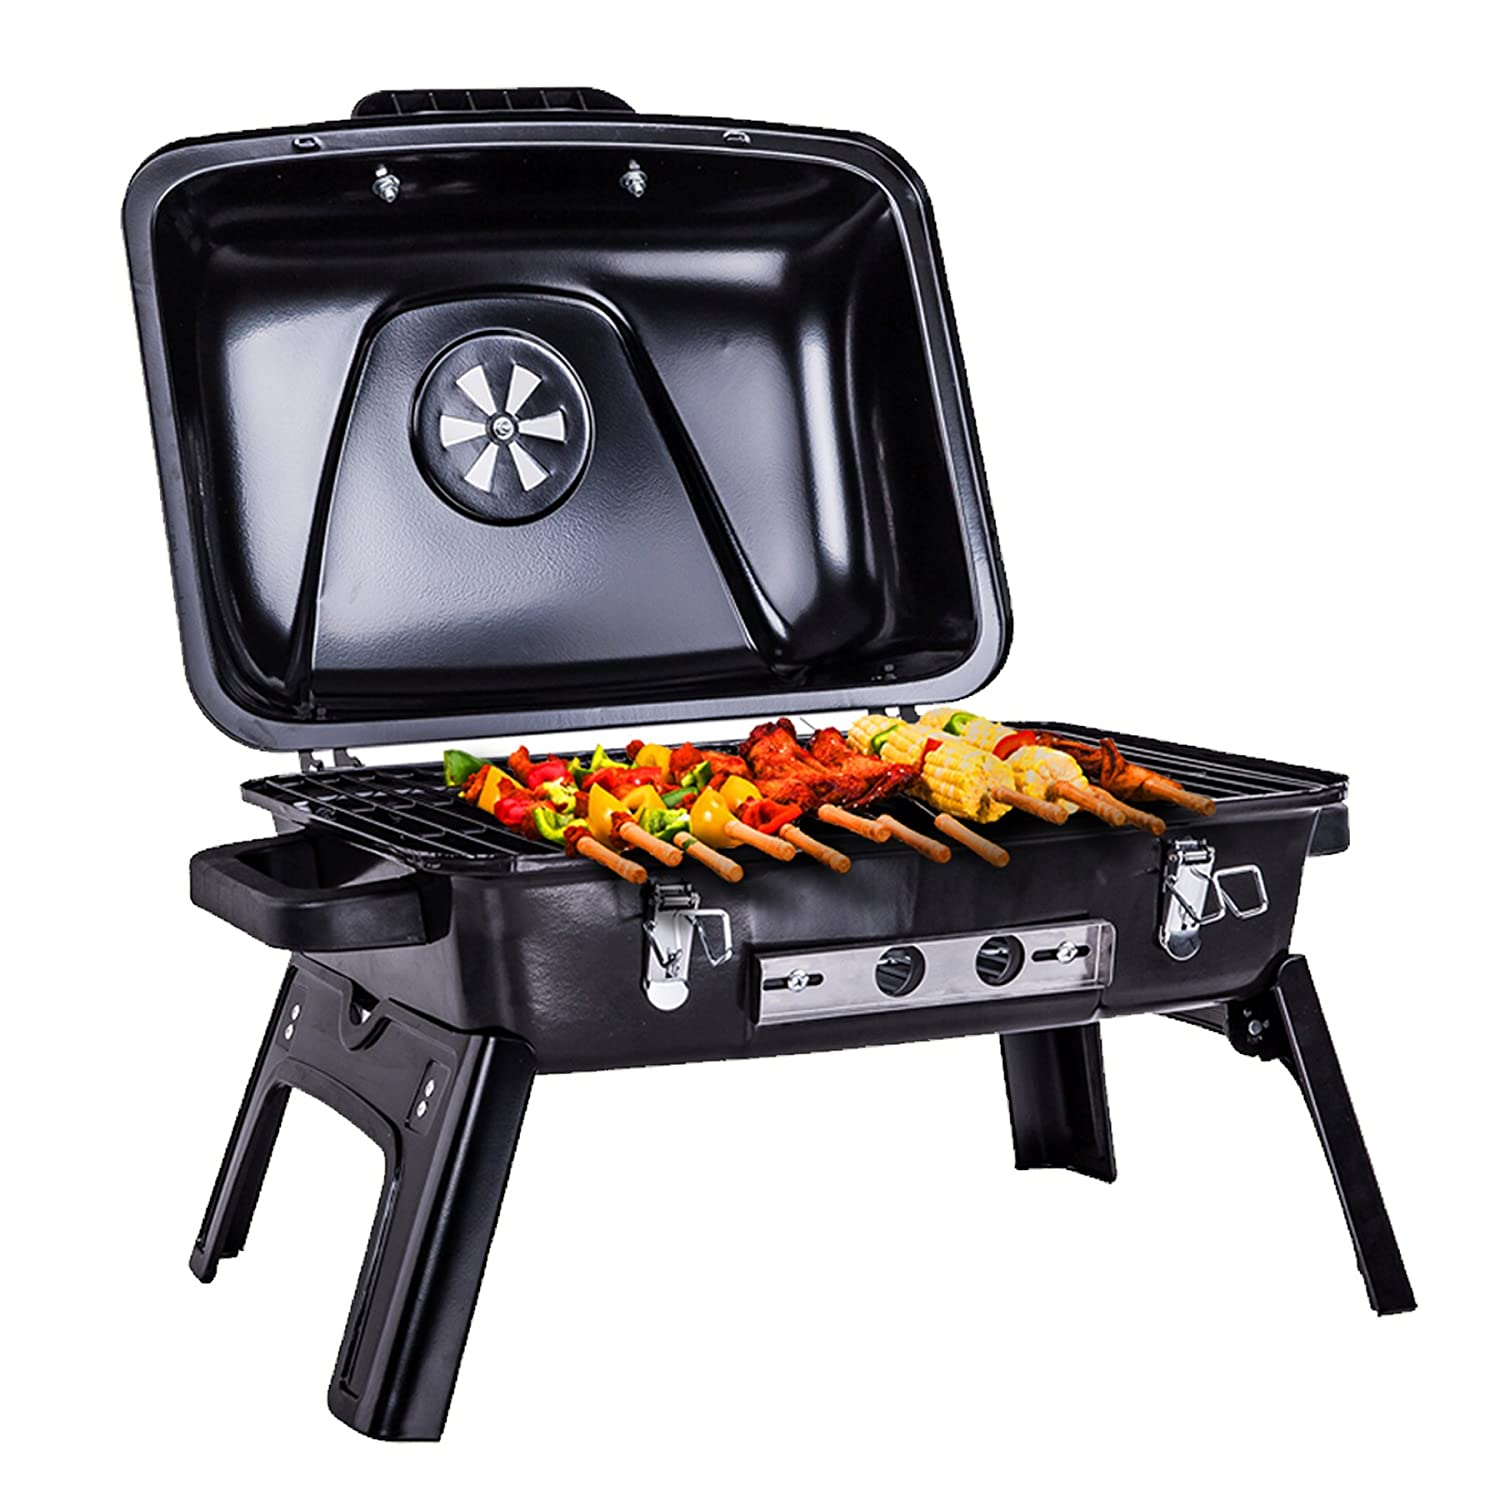 Pinty Portable Charcoal Grill Barbecue BBQ for Outdoor Use, 233 Square inch 0000